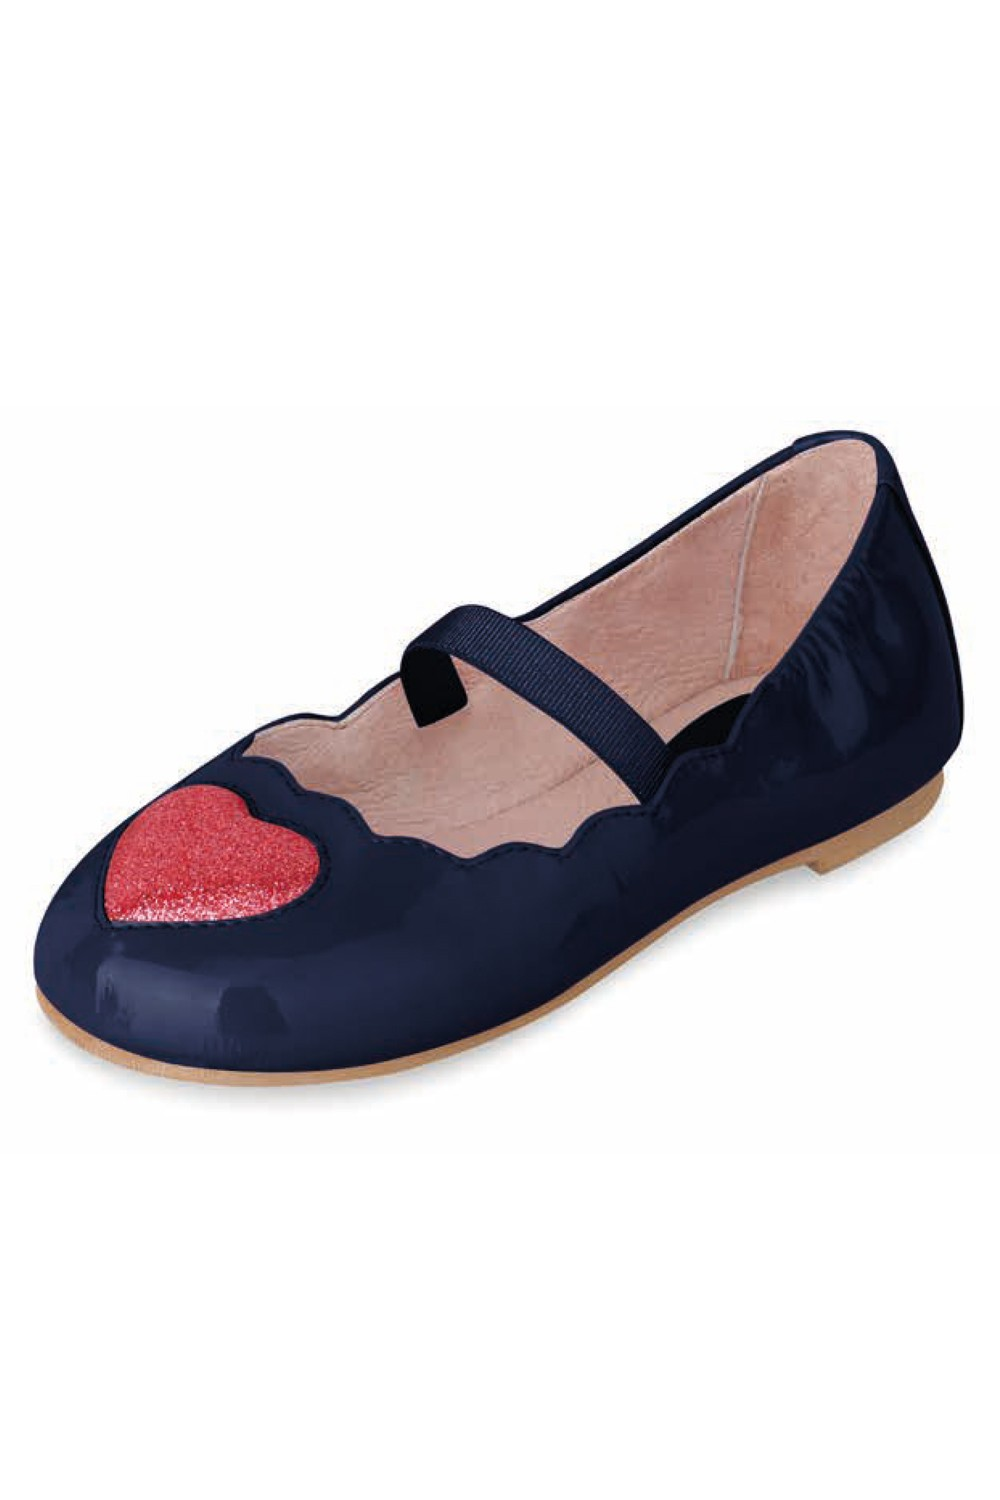 Valentine - Kleinkind Toddlers Fashion Shoes